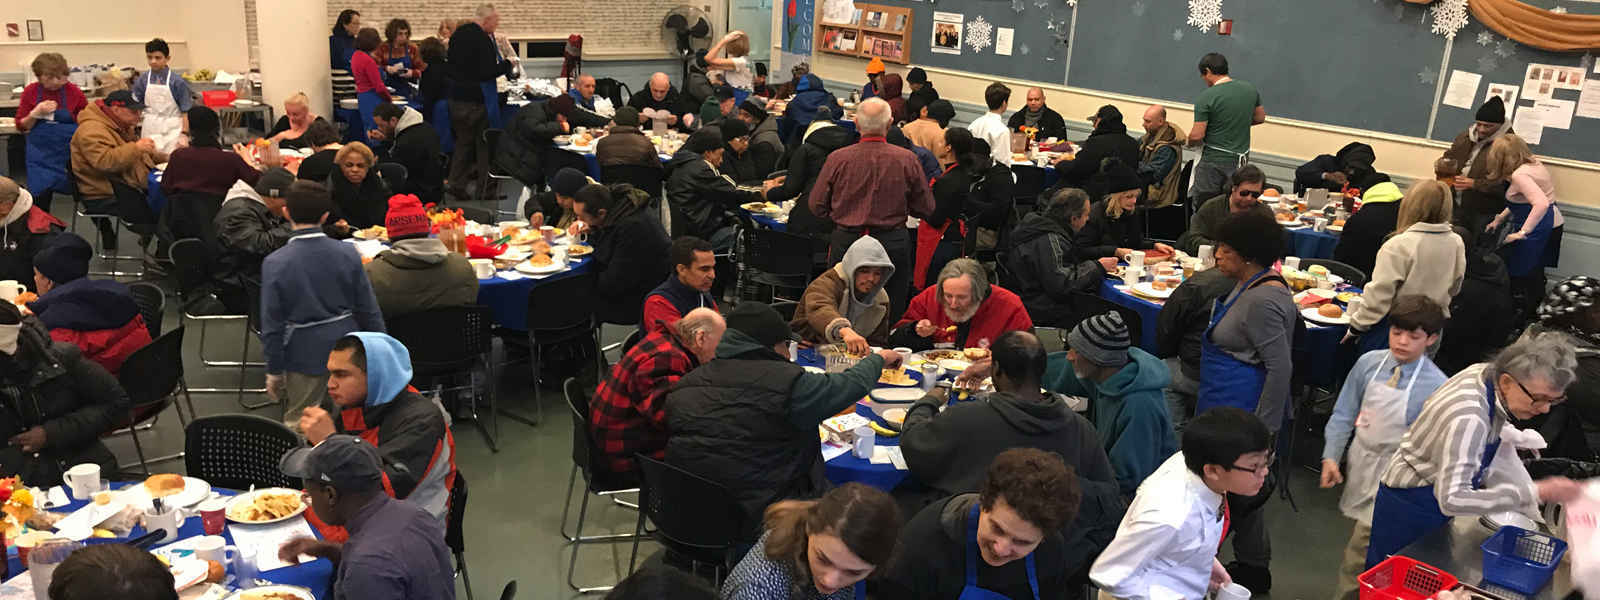 Help Feed Our Hungry NYC Neighbors image